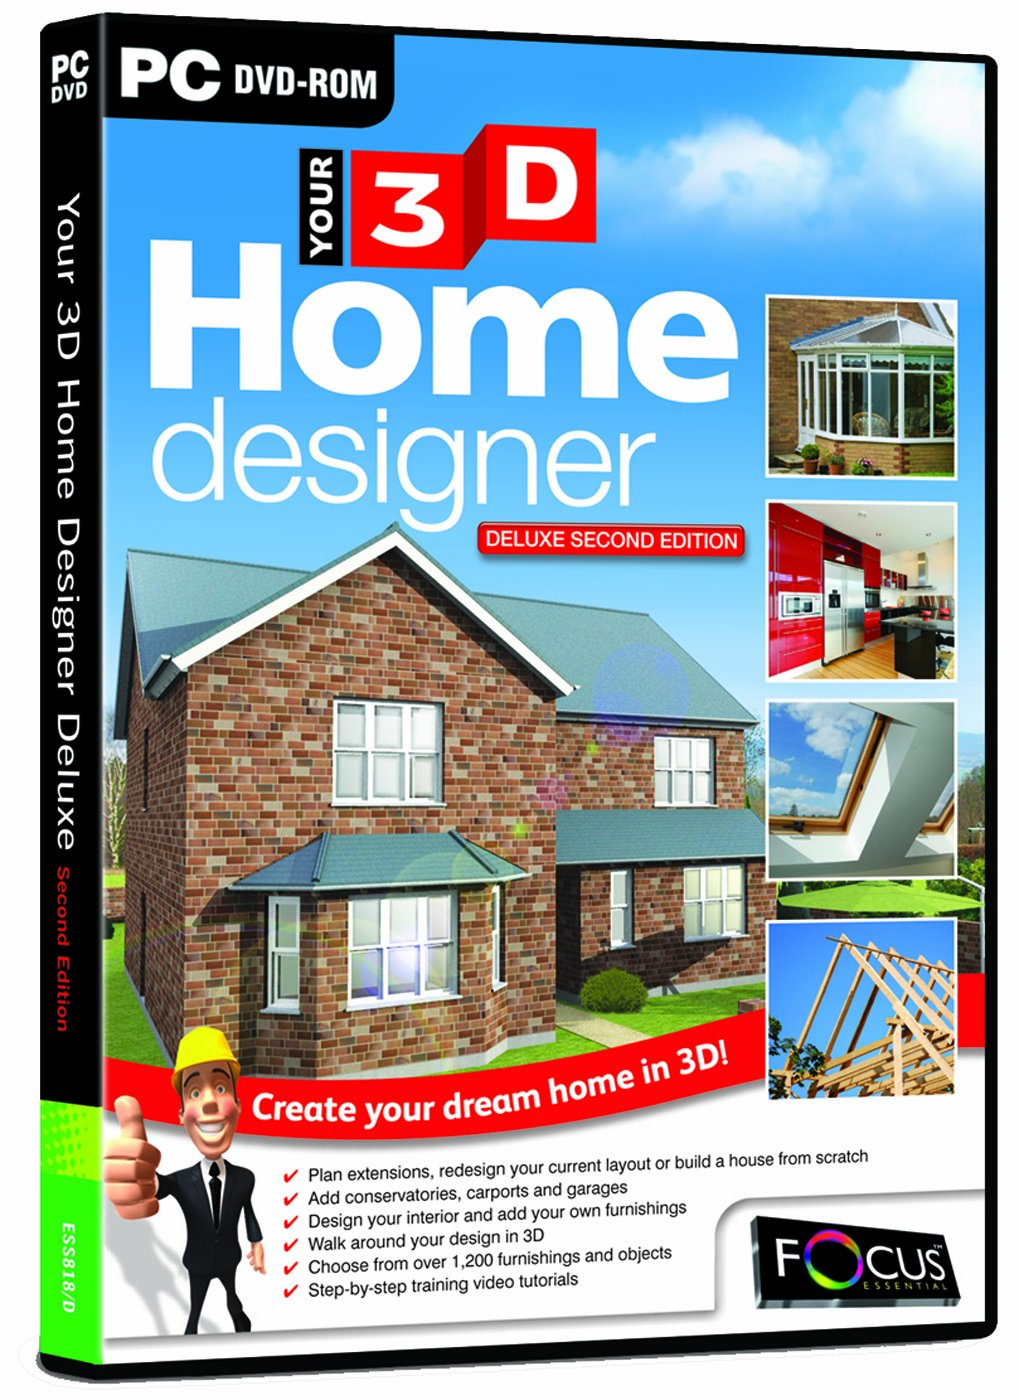 your 3d home designer 2 deluxe edition pc cd amazon co uk your 3d home designer 2 deluxe edition pc cd amazon co uk software